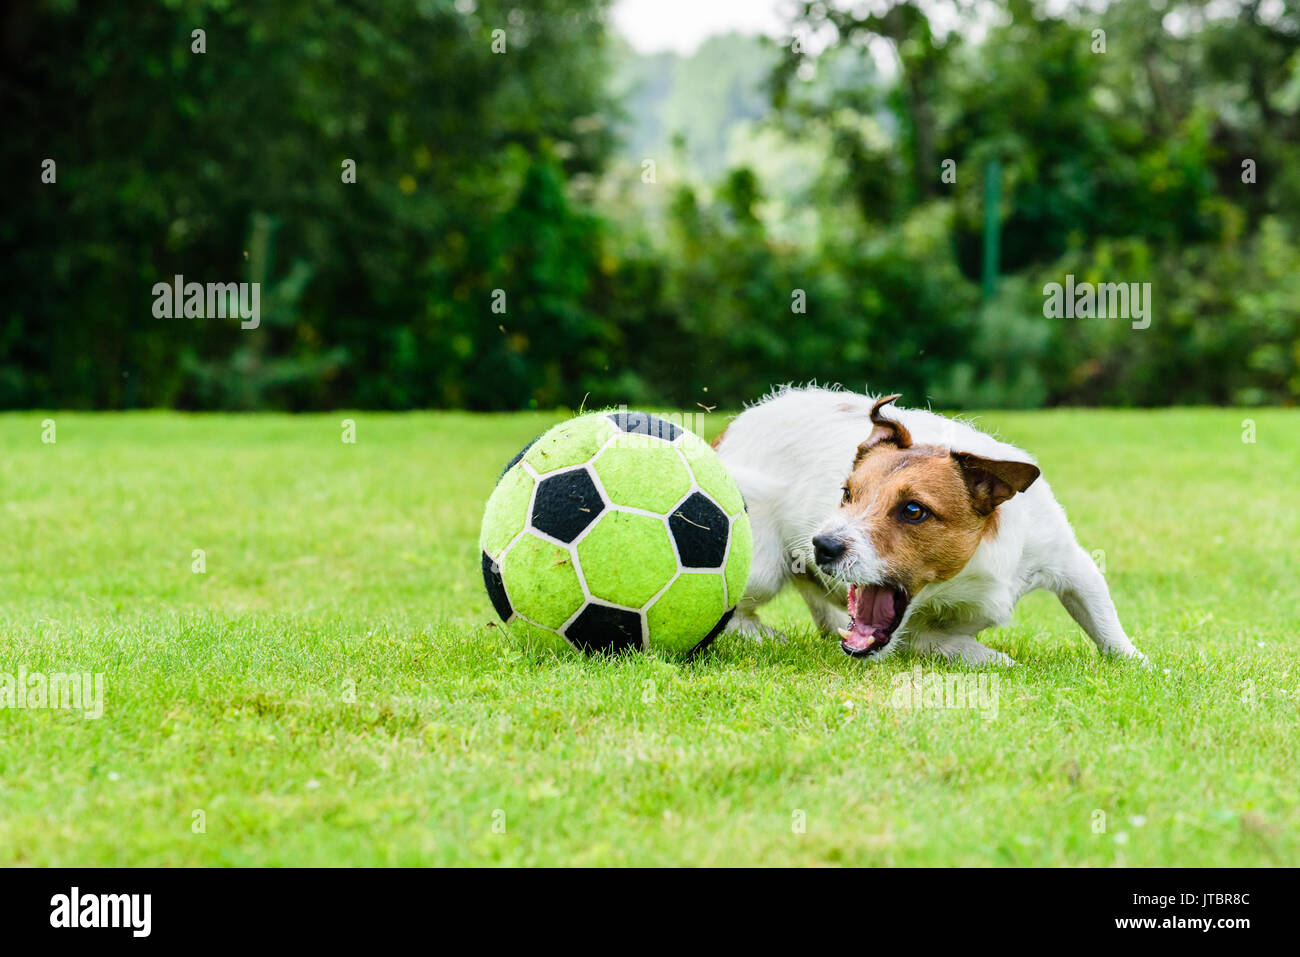 Engaged dog actively playing with football (soccer) ball - Stock Image